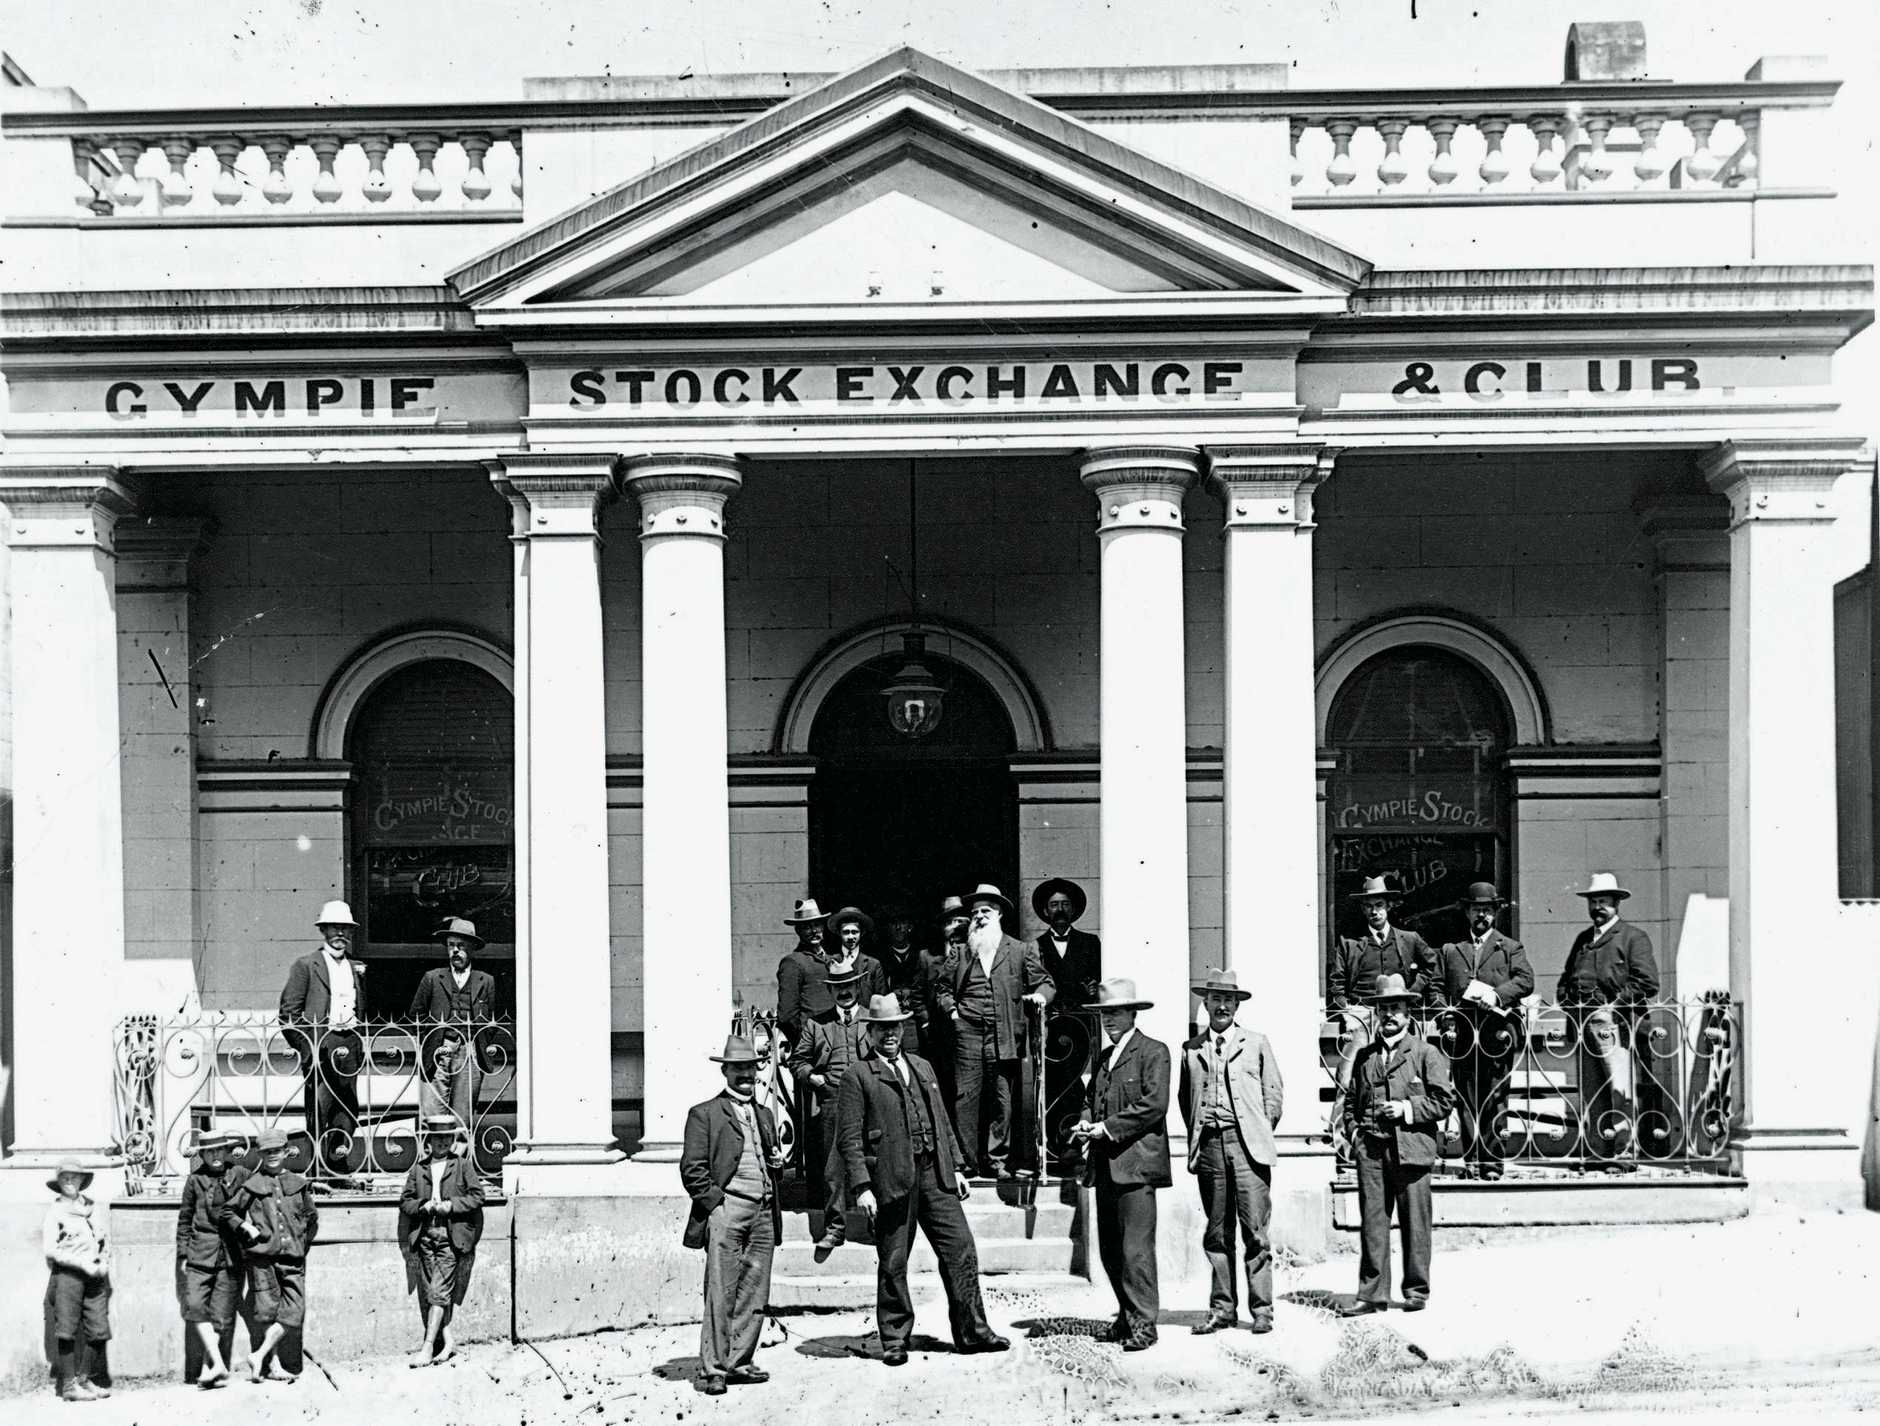 Members - and urchins - outside the Gympie Stock Exchange Club.Attribution: State Library of Queensland